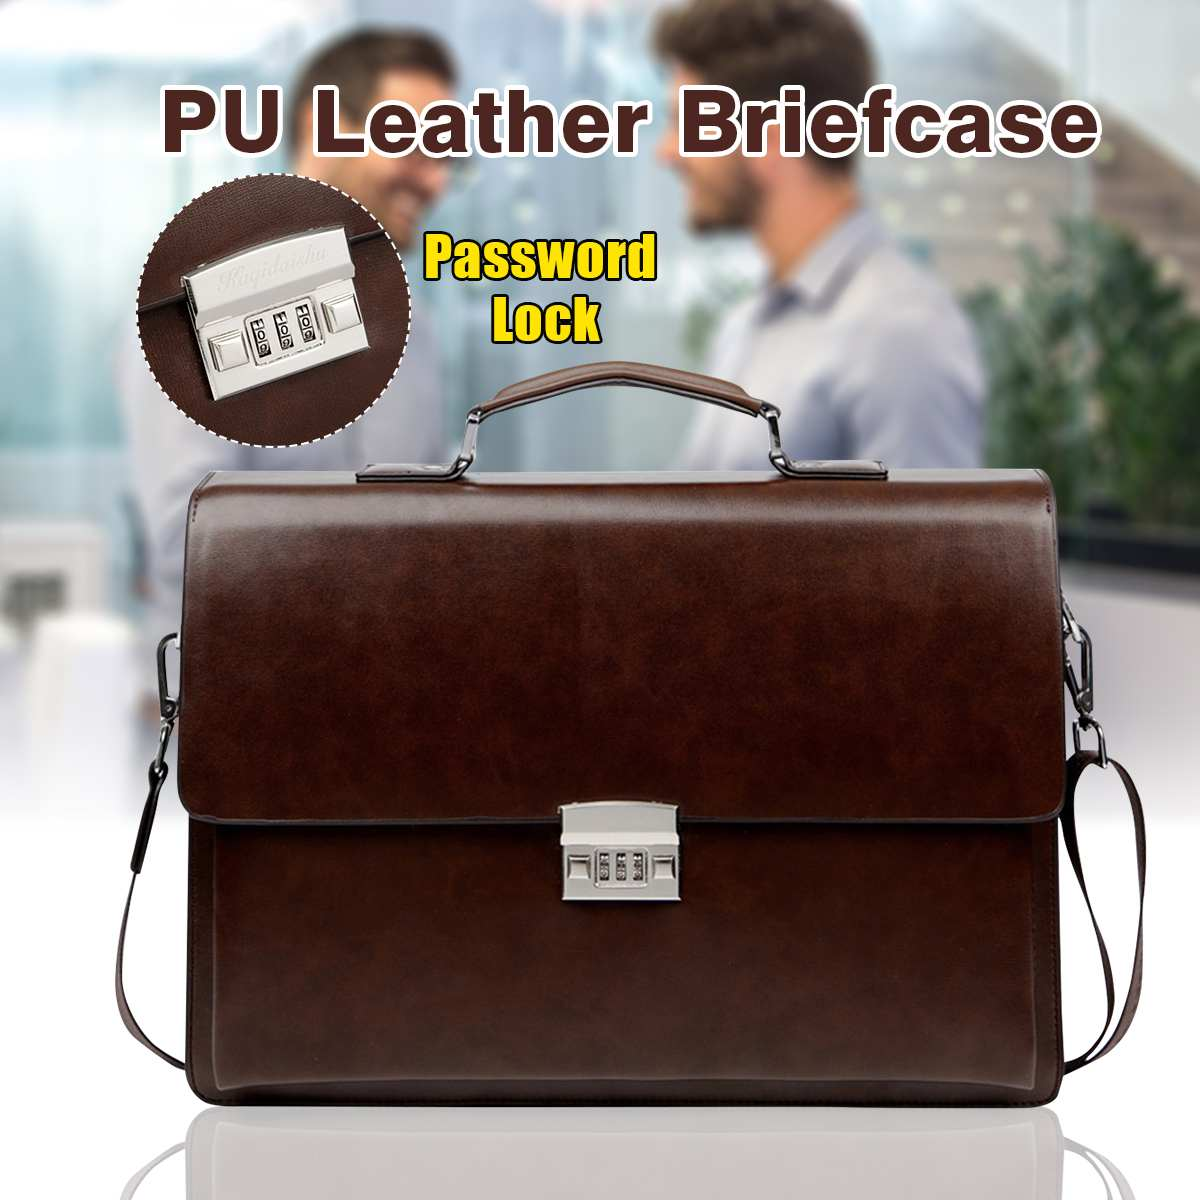 Men's Leather Briefcase Bag Fashion British Style Business Bags For Men Laptop Bag Shoulder Bags Male Luxury Handbag With Lock